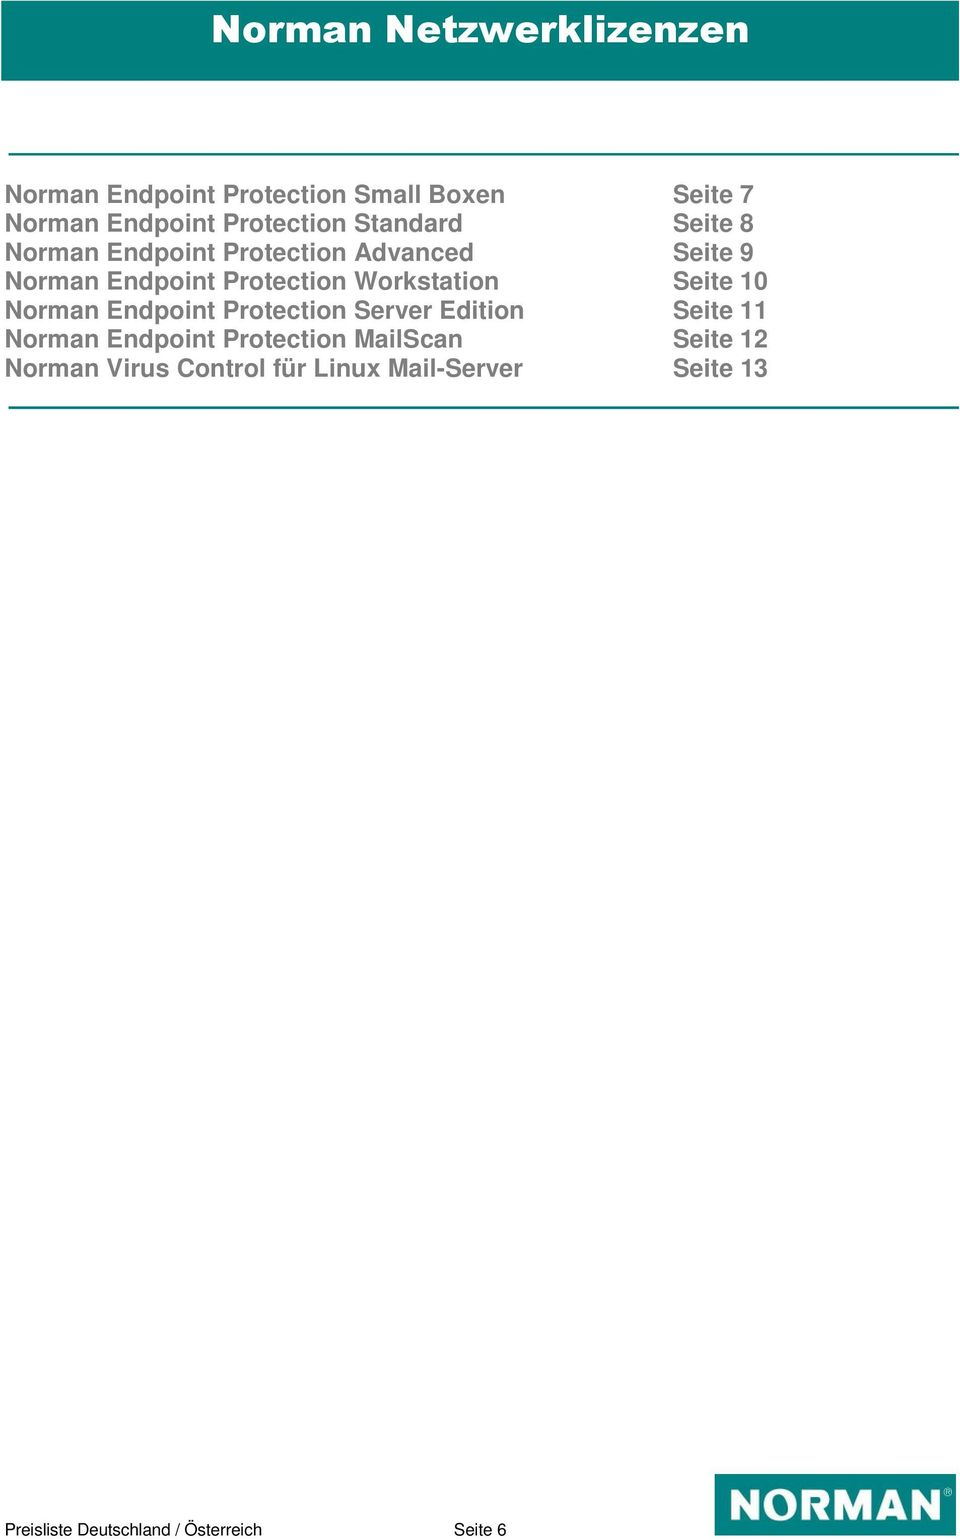 Seite 10 Norman Endpoint Protection Server Edition Seite 11 Norman Endpoint Protection MailScan